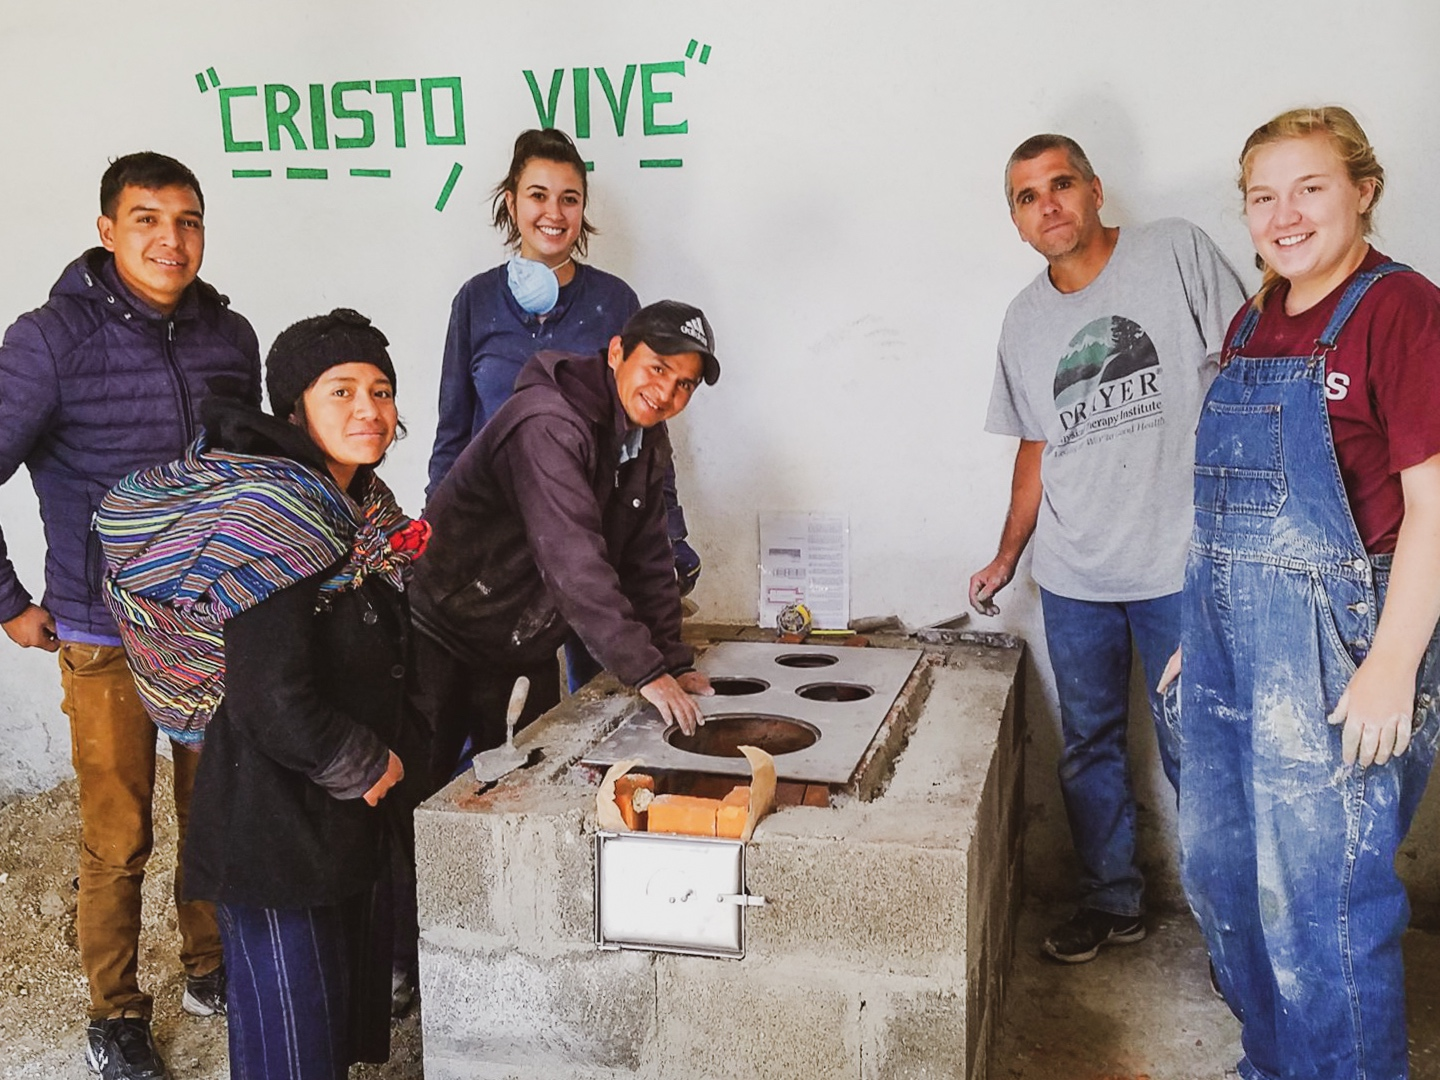 Clean-Air Stove Building - Epidemiological research demonstrates that the two leading causes of mortality in our partner communities in Guatemala are upper respiratory infections and waterborne contaminants. For children under five, respiratory illness is the leading cause of death (WHO). These are both linked to the practice of cooking on open pit fires in tiny, unventilated homes.